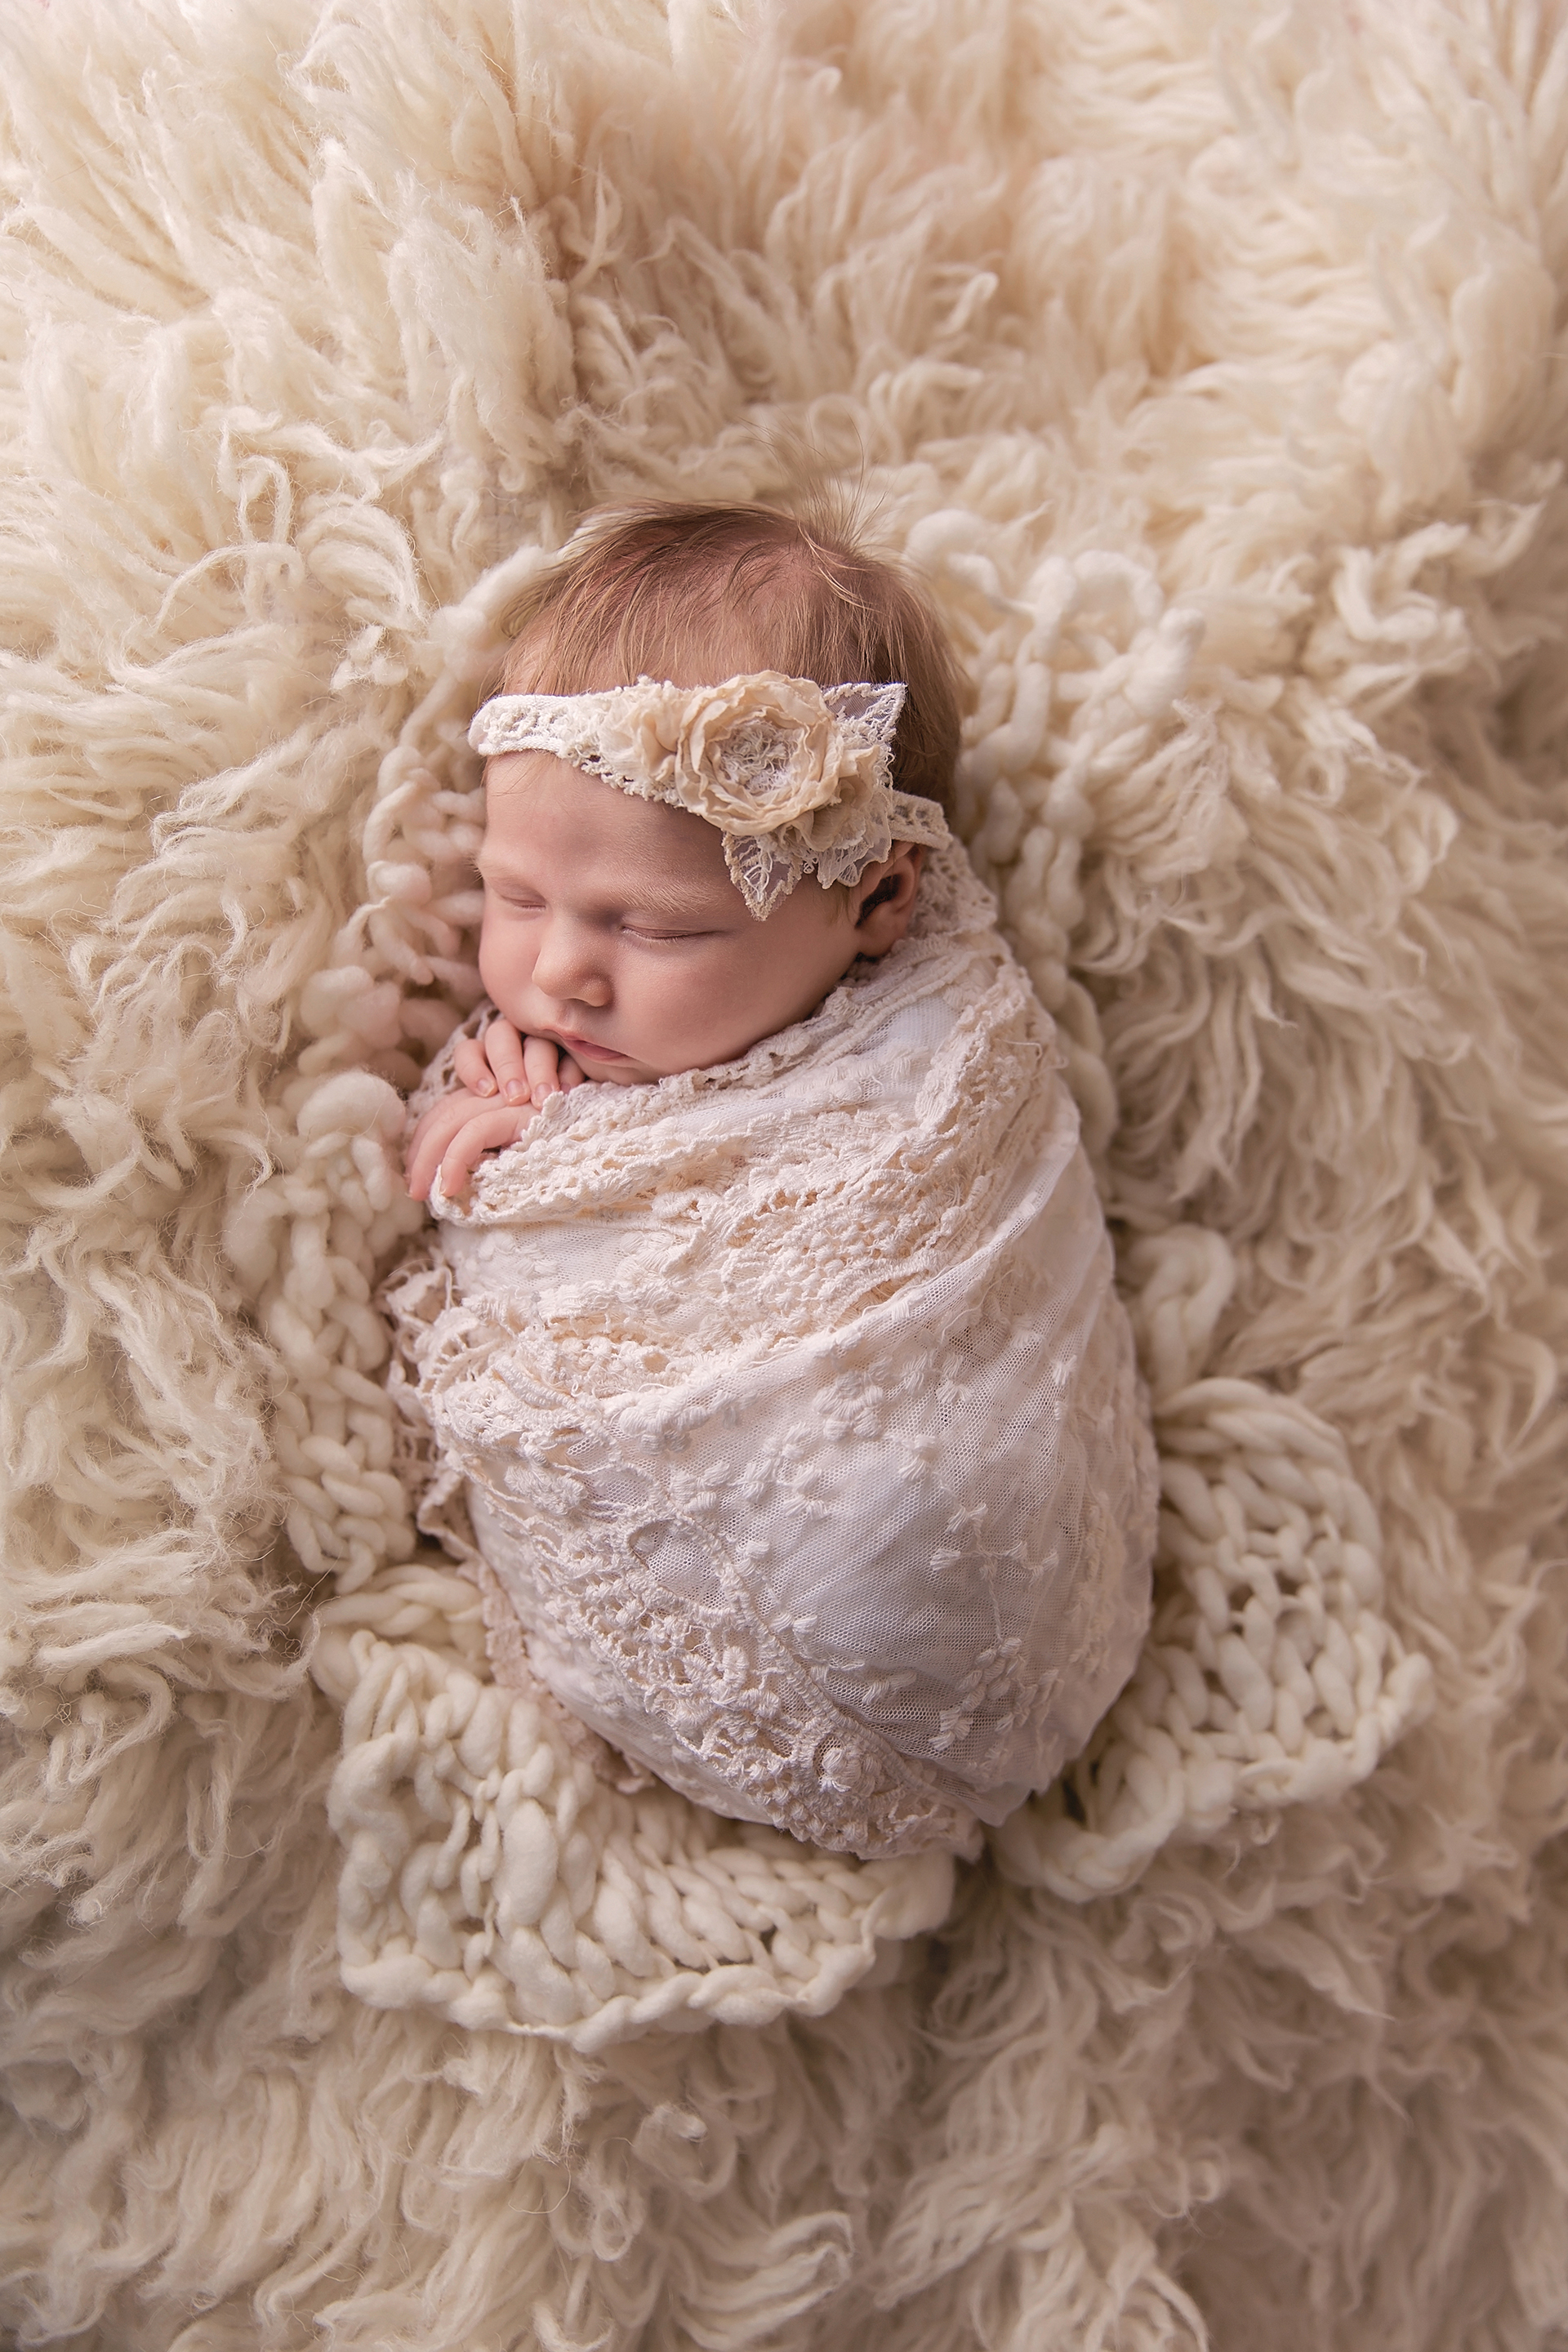 HazelNewbornPhotos-19EDIT.jpg